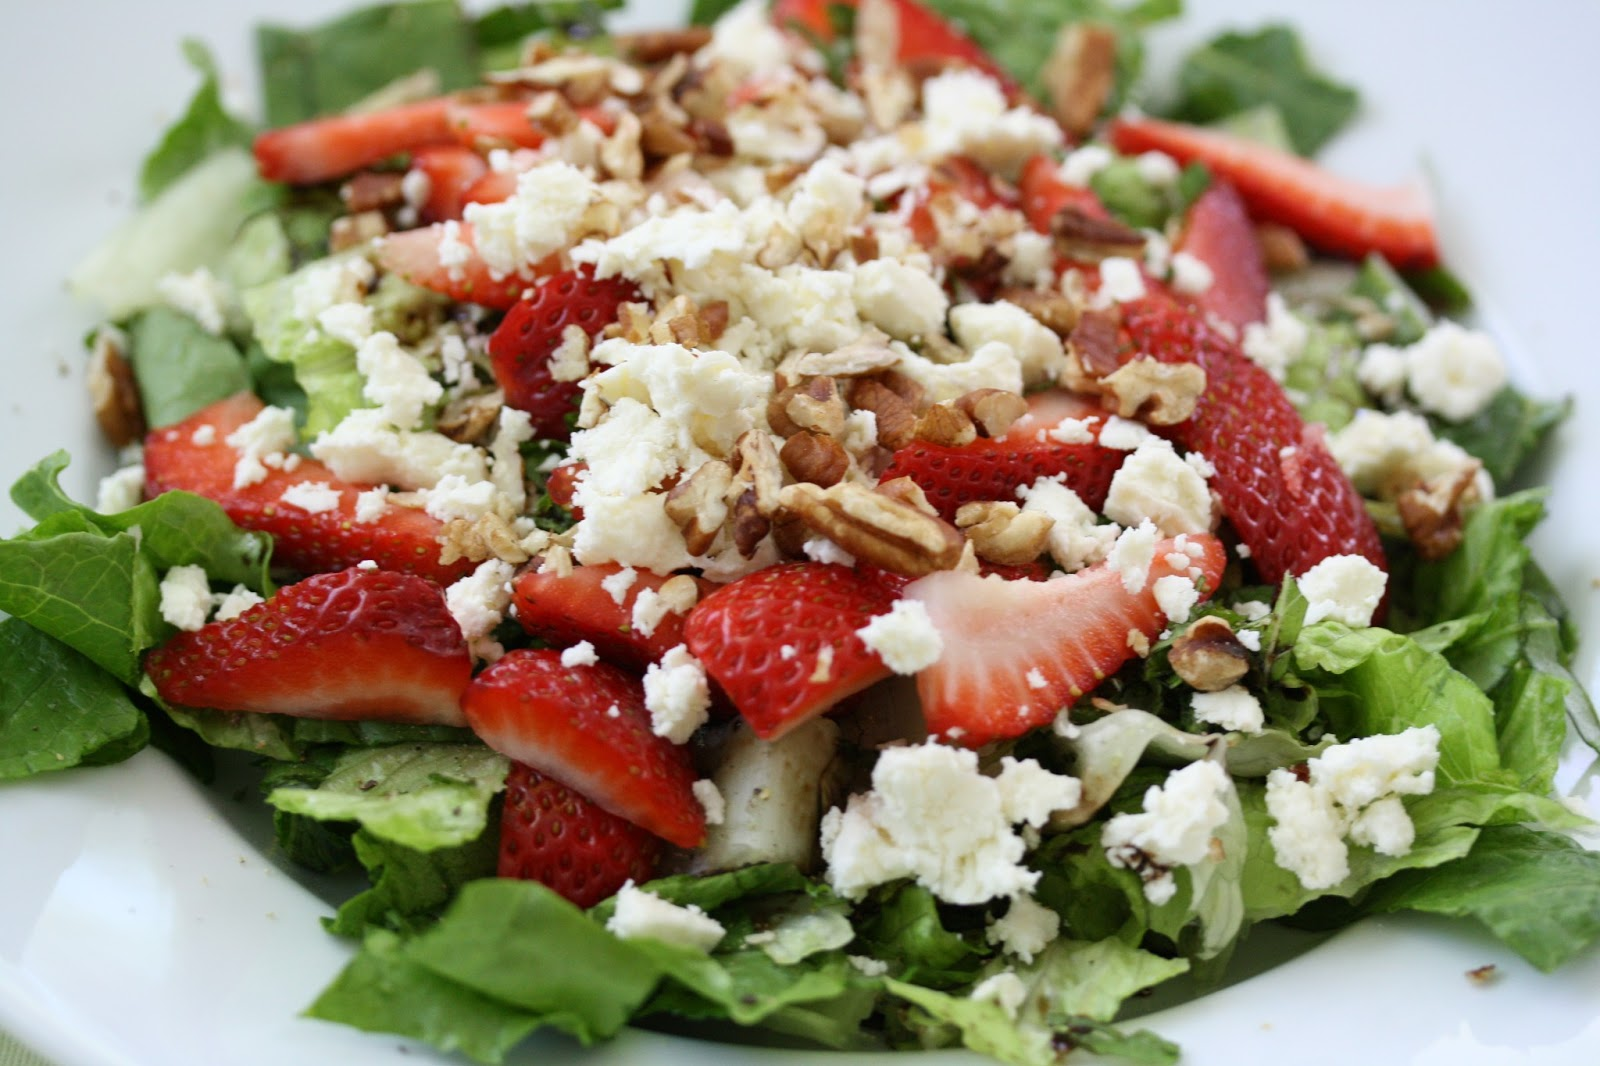 Hot Dinner Happy Home: Strawberry and Feta Salad